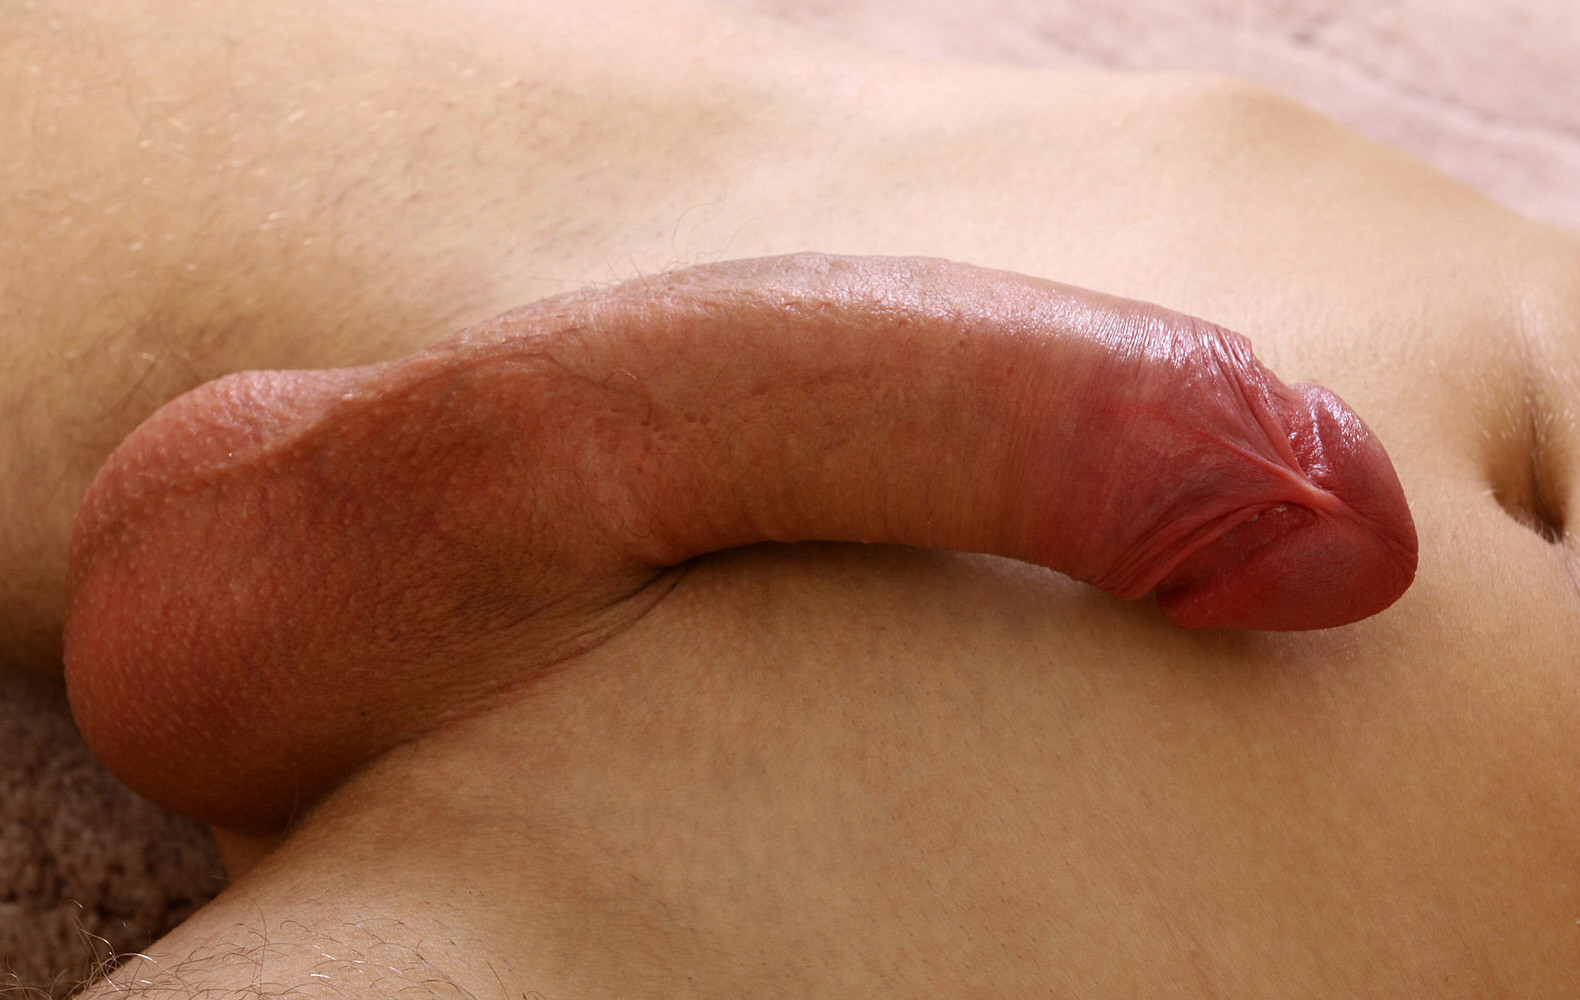 Pics of shaved cocks and balls